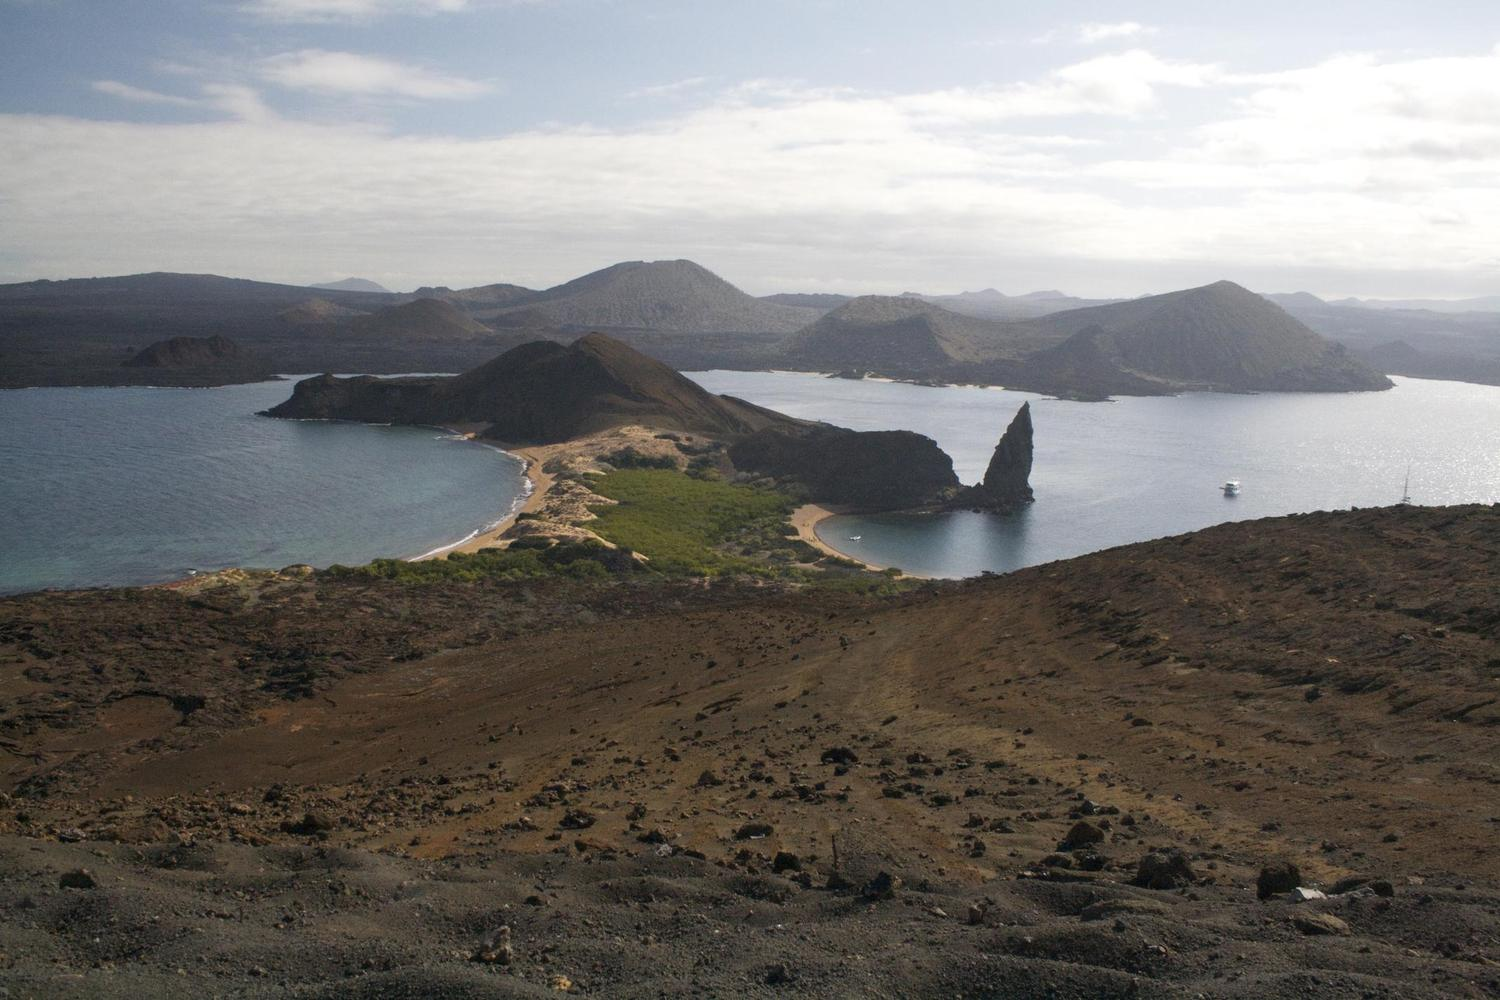 Views from the top of Bartolomé island, Galapagos